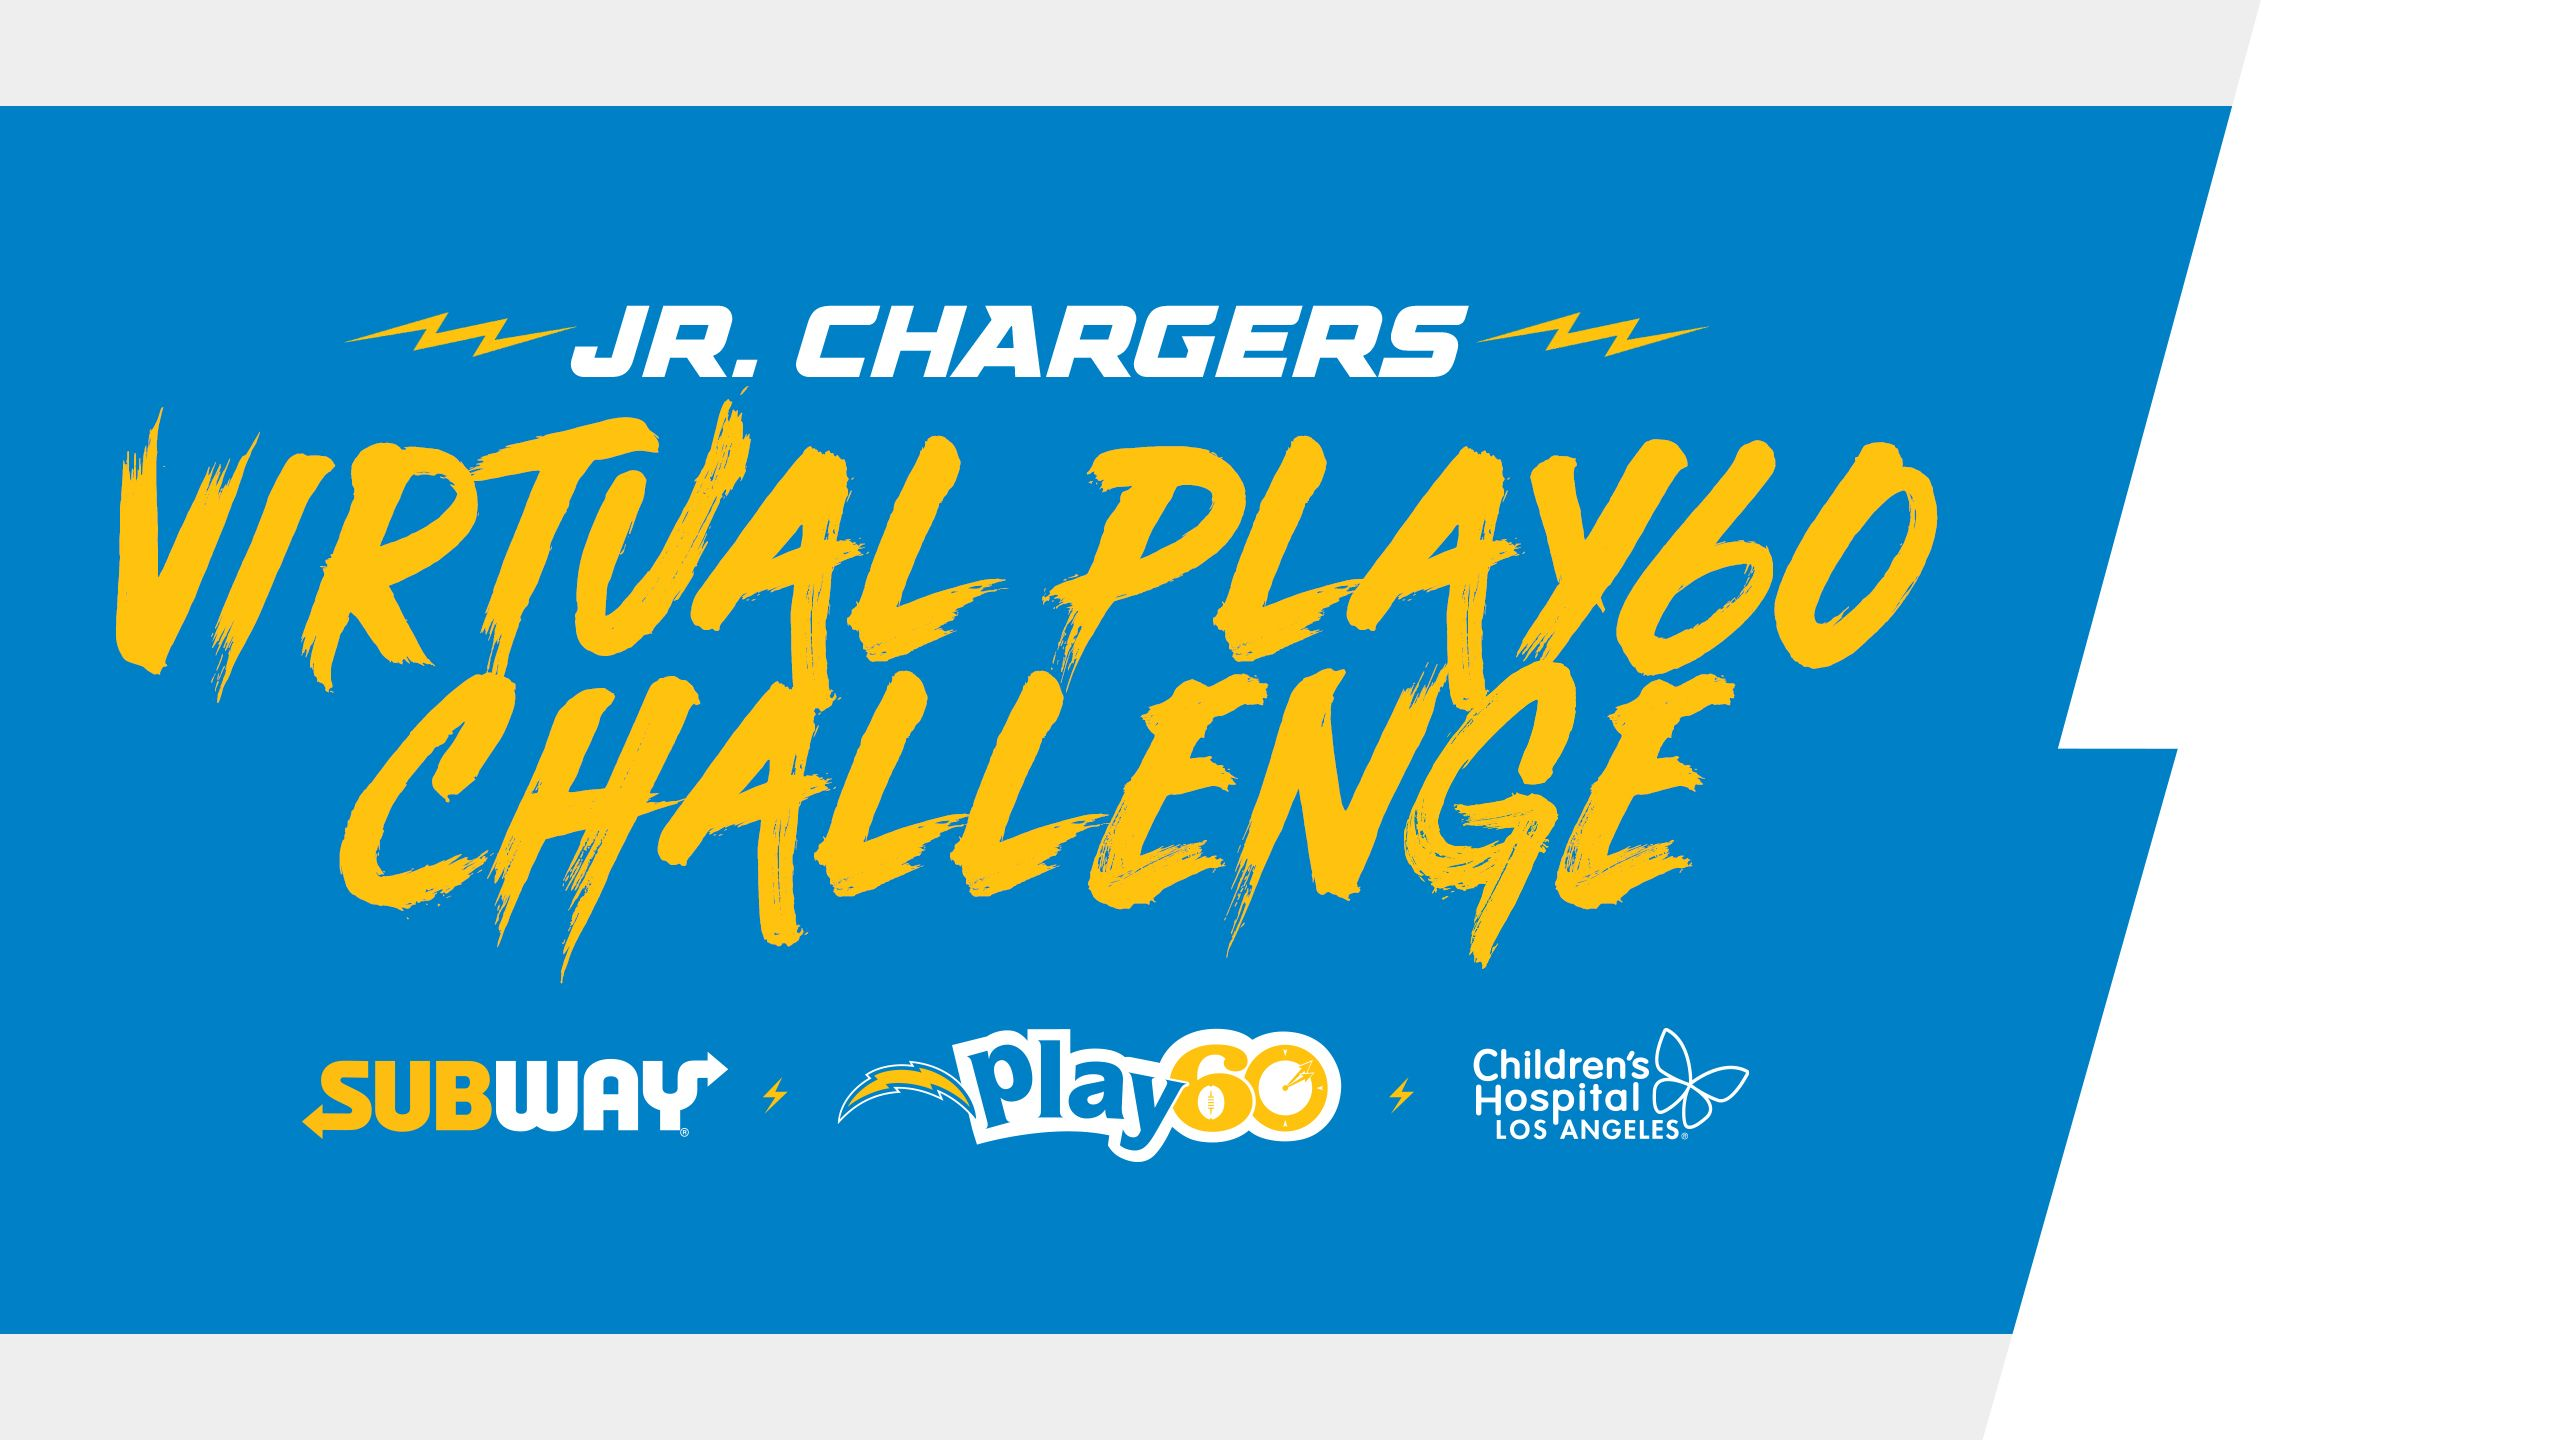 Jr. Chargers Virtual Play60 Challenge